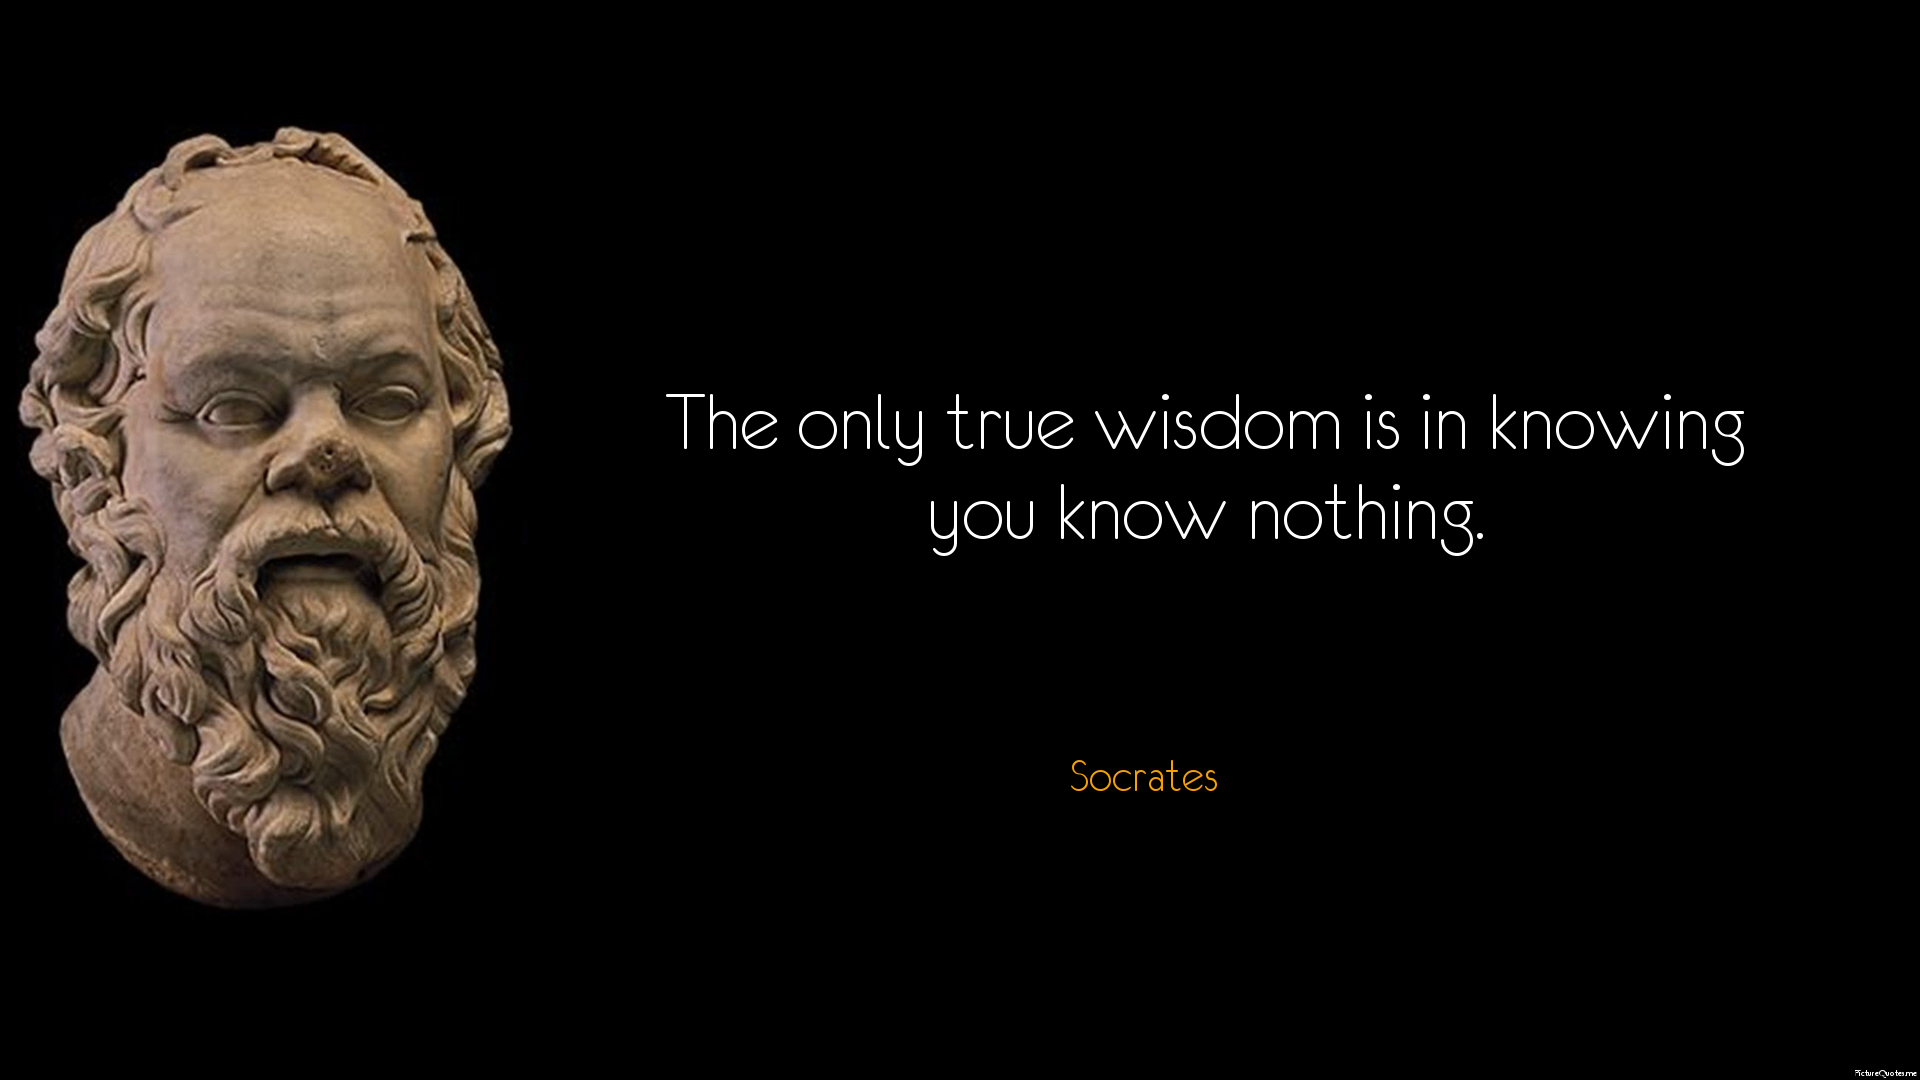 http://www.picturequotes.me/quote_pictures/socrates_quote_the_only_true_wisdom_is_in_knowing_you_know_nothing_5632.jpg